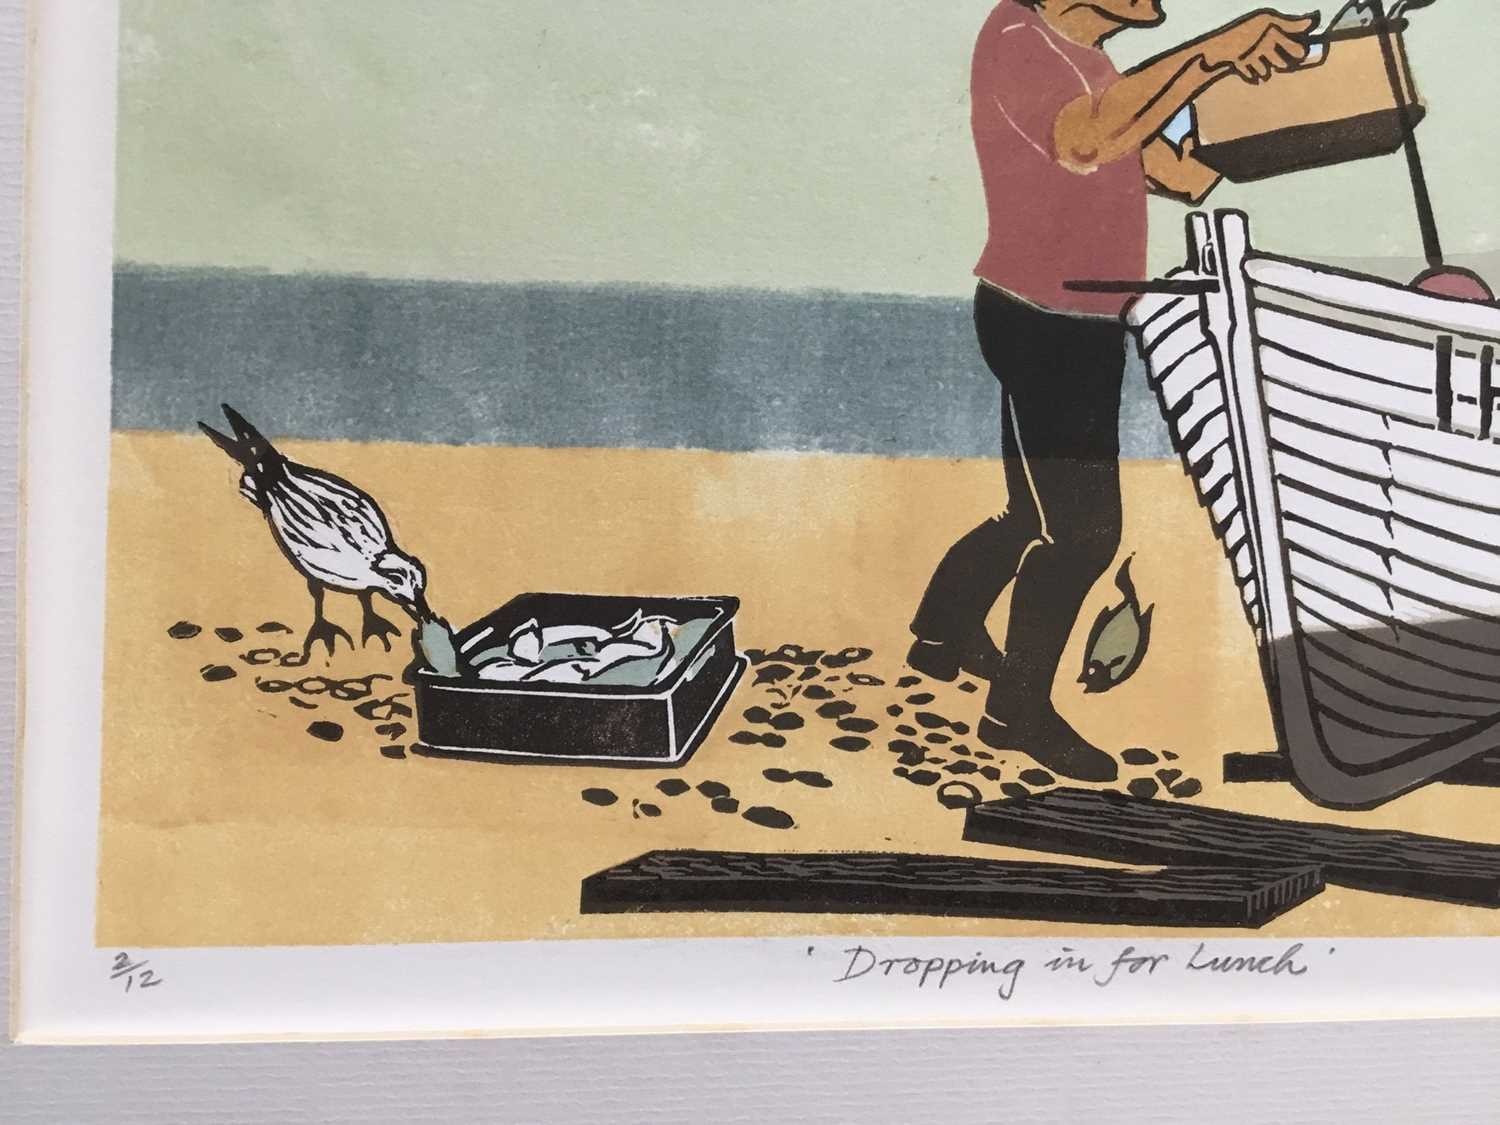 Penny Berry Paterson (1941-2021) colour linocut print, Dropping in for lunch, signed and numbered 2/ - Image 3 of 3